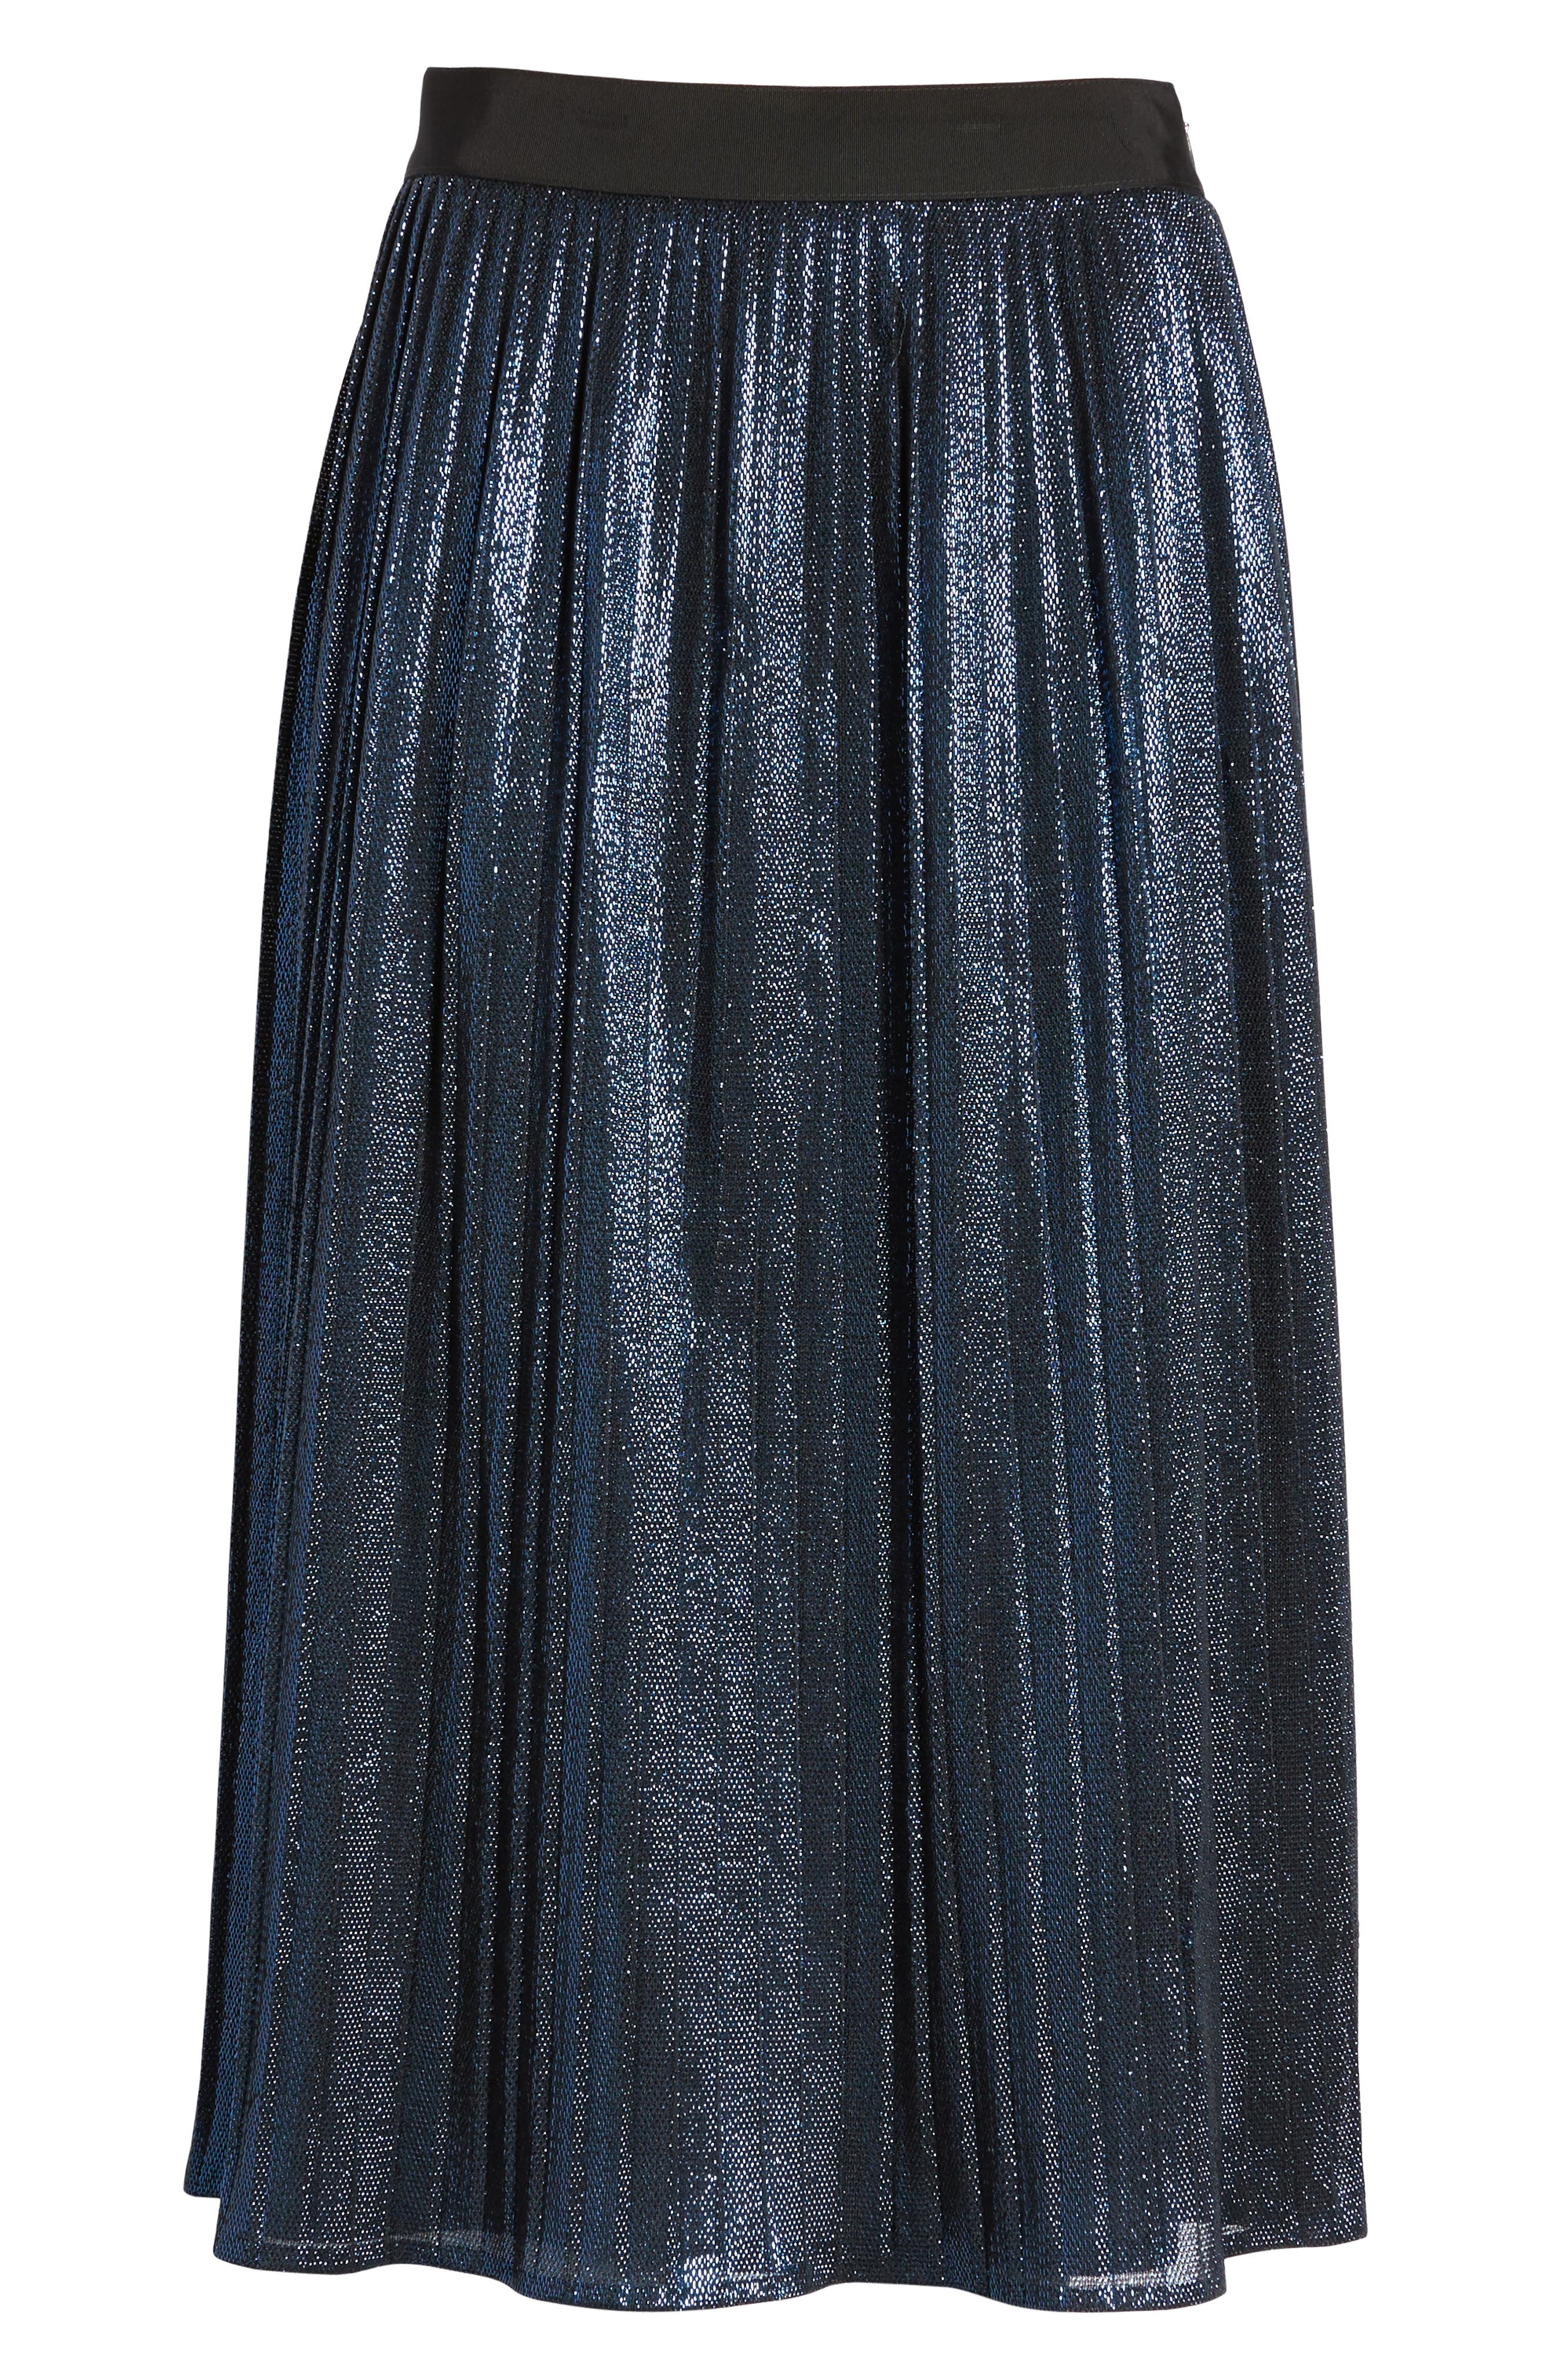 Miplisa Metallic Pleated Midi Skirt,                             Alternate thumbnail 6, color,                             480